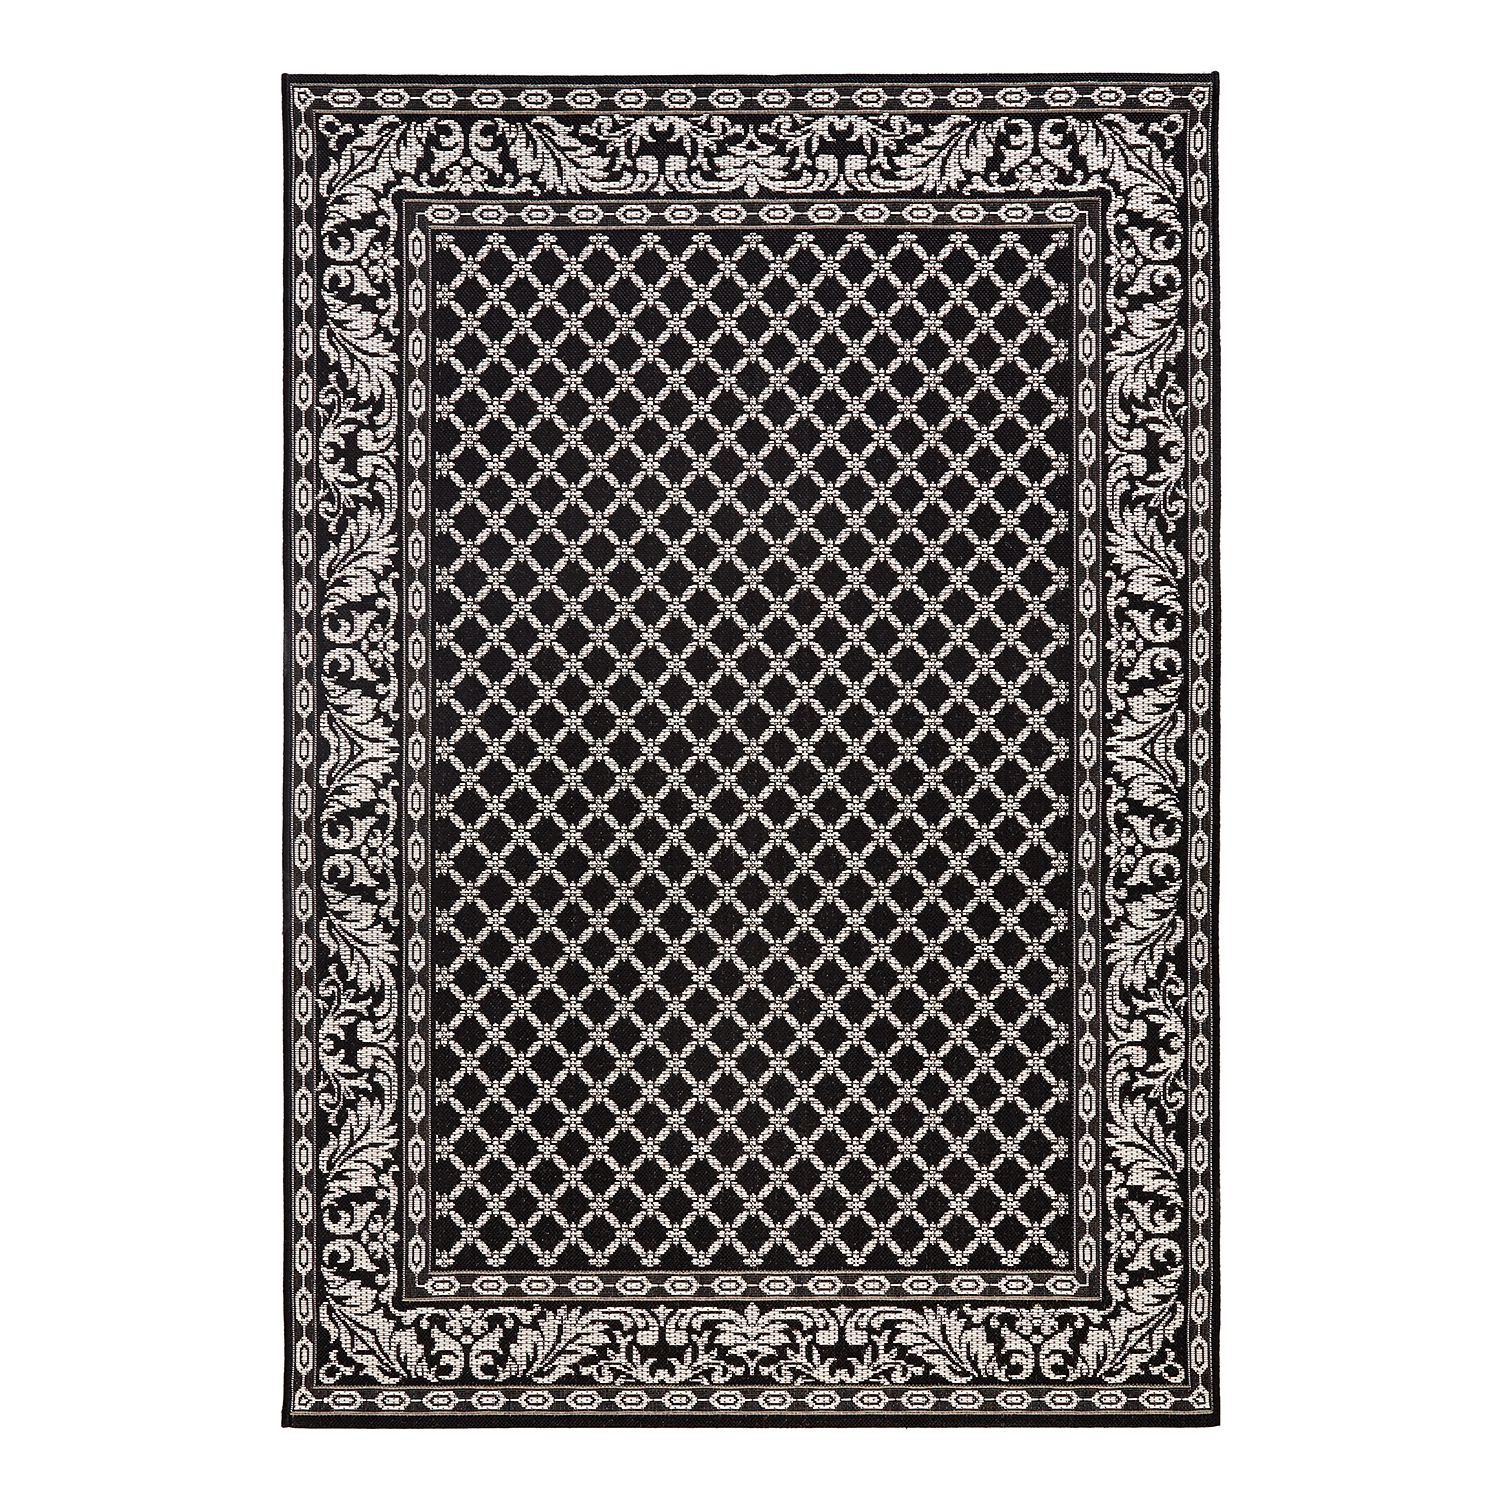 tapis d 39 int rieur et d 39 ext rieur royal fibres synth tiques noir 160 x. Black Bedroom Furniture Sets. Home Design Ideas